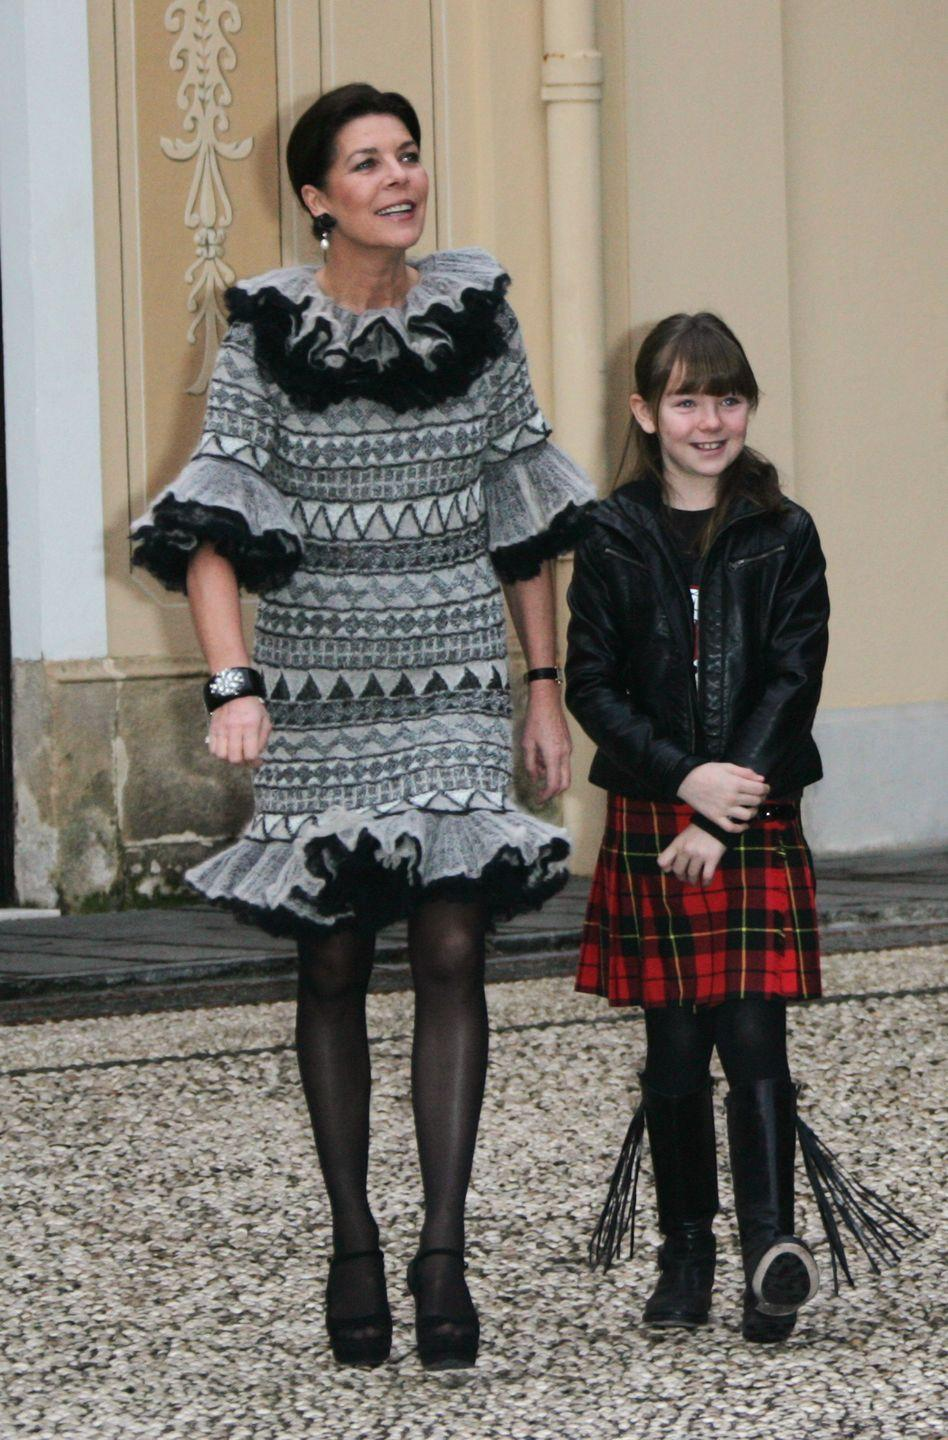 """<p>Princess Caroline and her youngest daughter, <a href=""""https://www.townandcountrymag.com/society/tradition/g31251104/princess-alexandra-of-hanover-photos-style/"""" rel=""""nofollow noopener"""" target=""""_blank"""" data-ylk=""""slk:Princess Alexandra of Hanover"""" class=""""link rapid-noclick-resp"""">Princess Alexandra of Hanover</a>, at a Christmas event at the Royal Palace in 2009.</p>"""